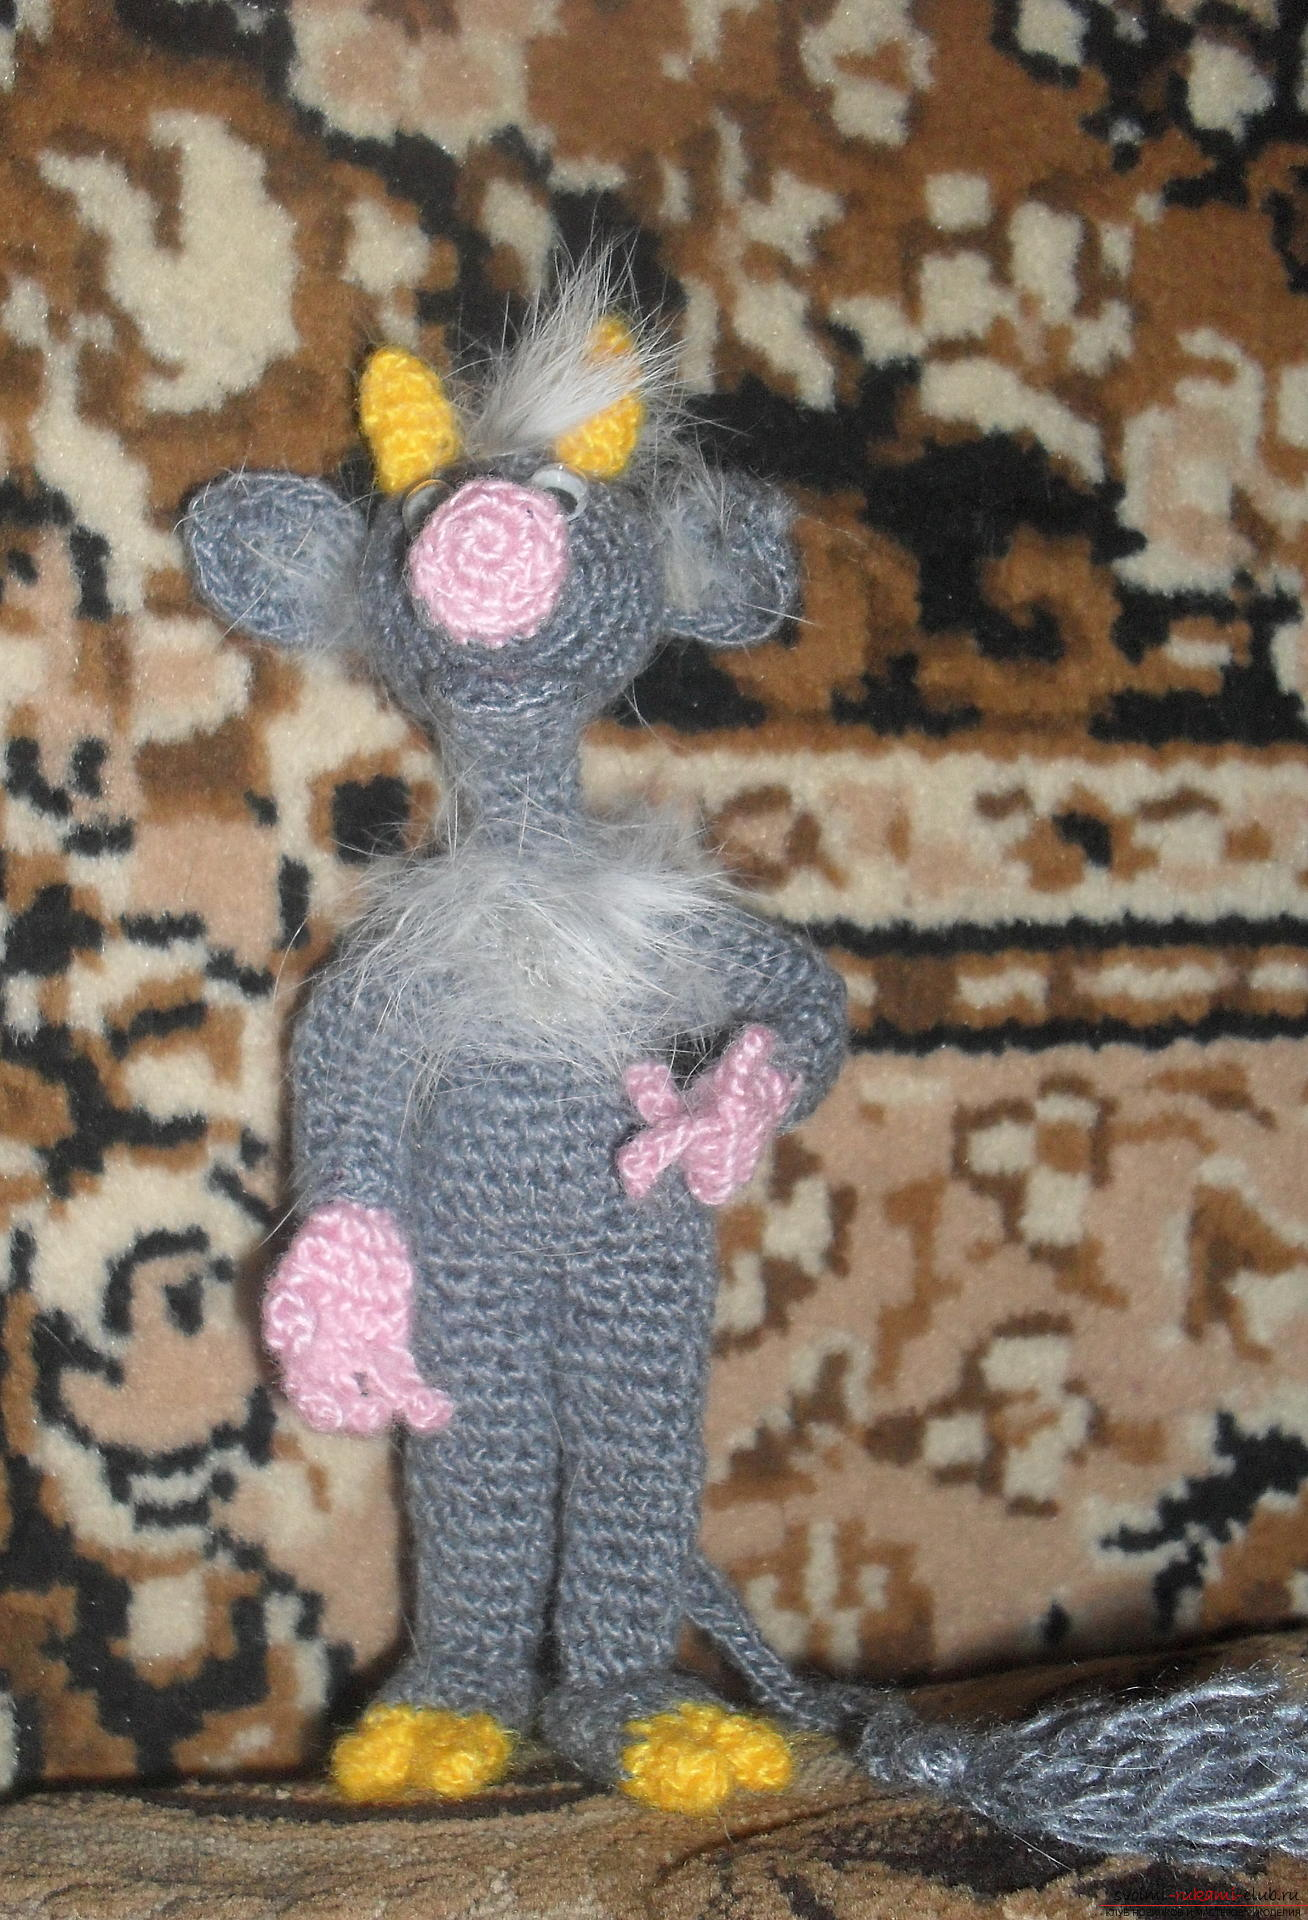 Fairy-tale heroes - the dream of any child, knitted toys in the form of a yaga woman, Banyun's cat will appeal to many children. Crocheted crochet toys are created quickly and in any color .. Picture №3